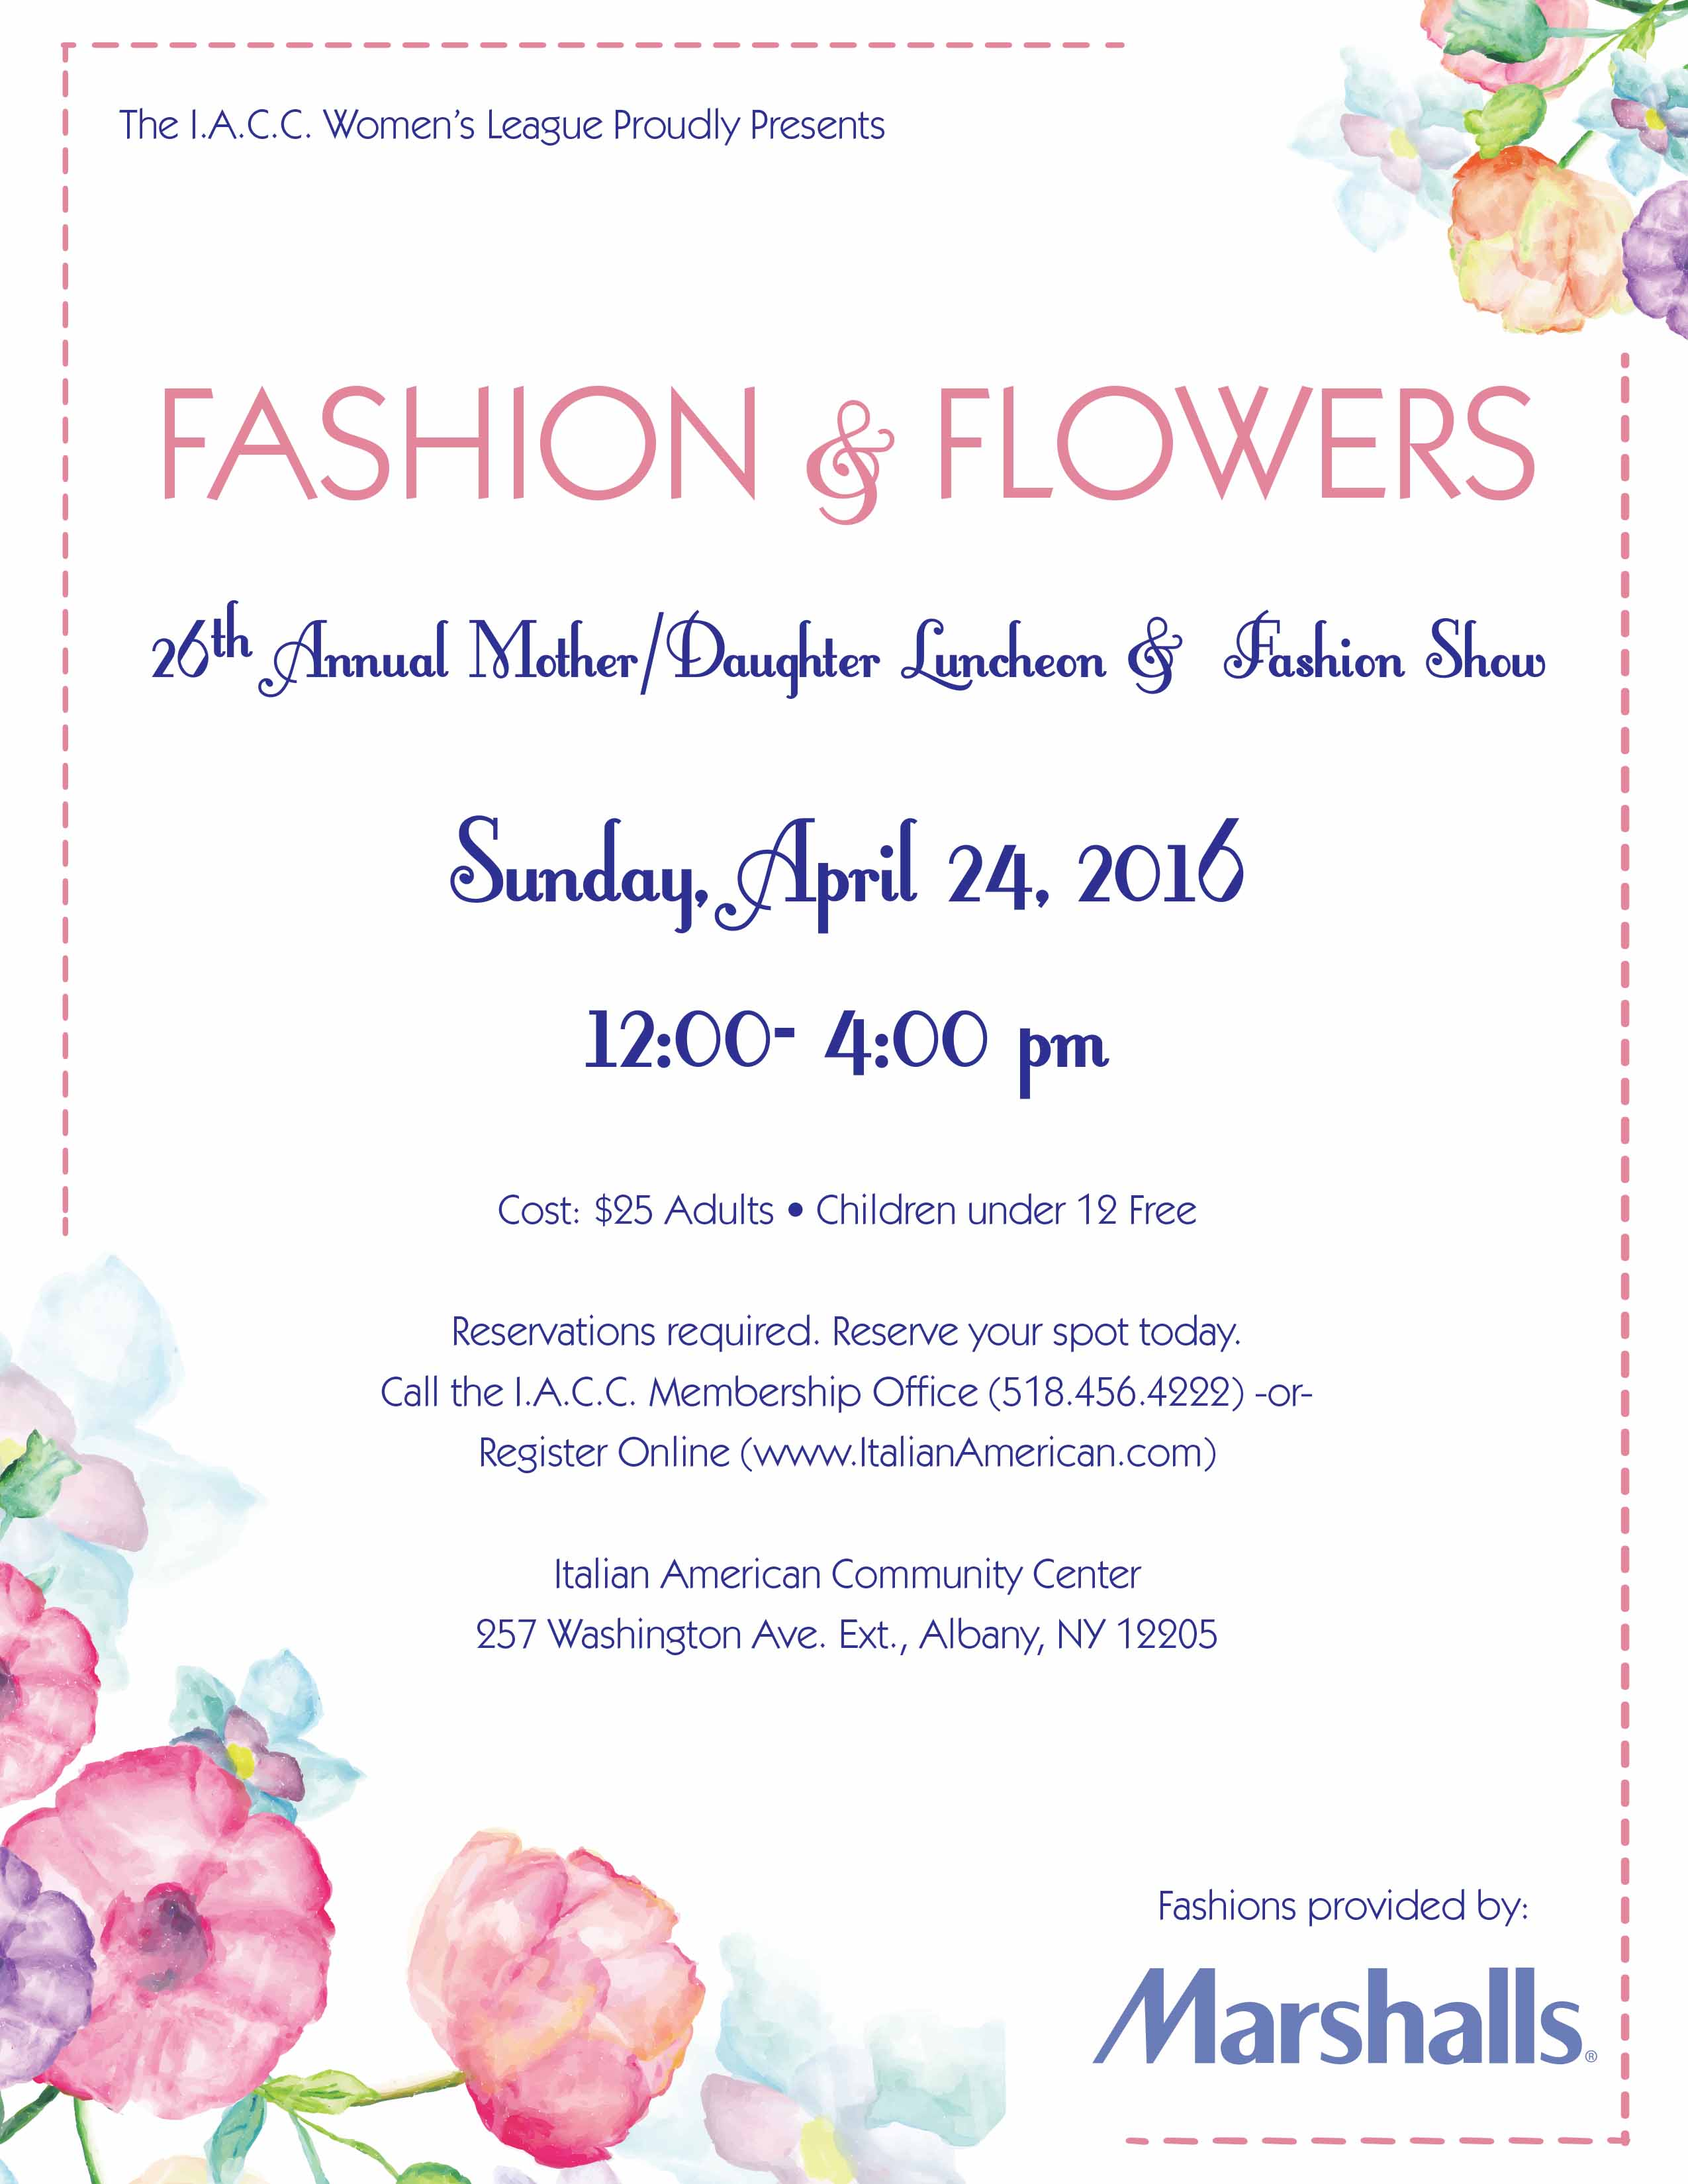 Fashion & Flowers - 2016 Mother Daughter Luncheon & Fashion Show